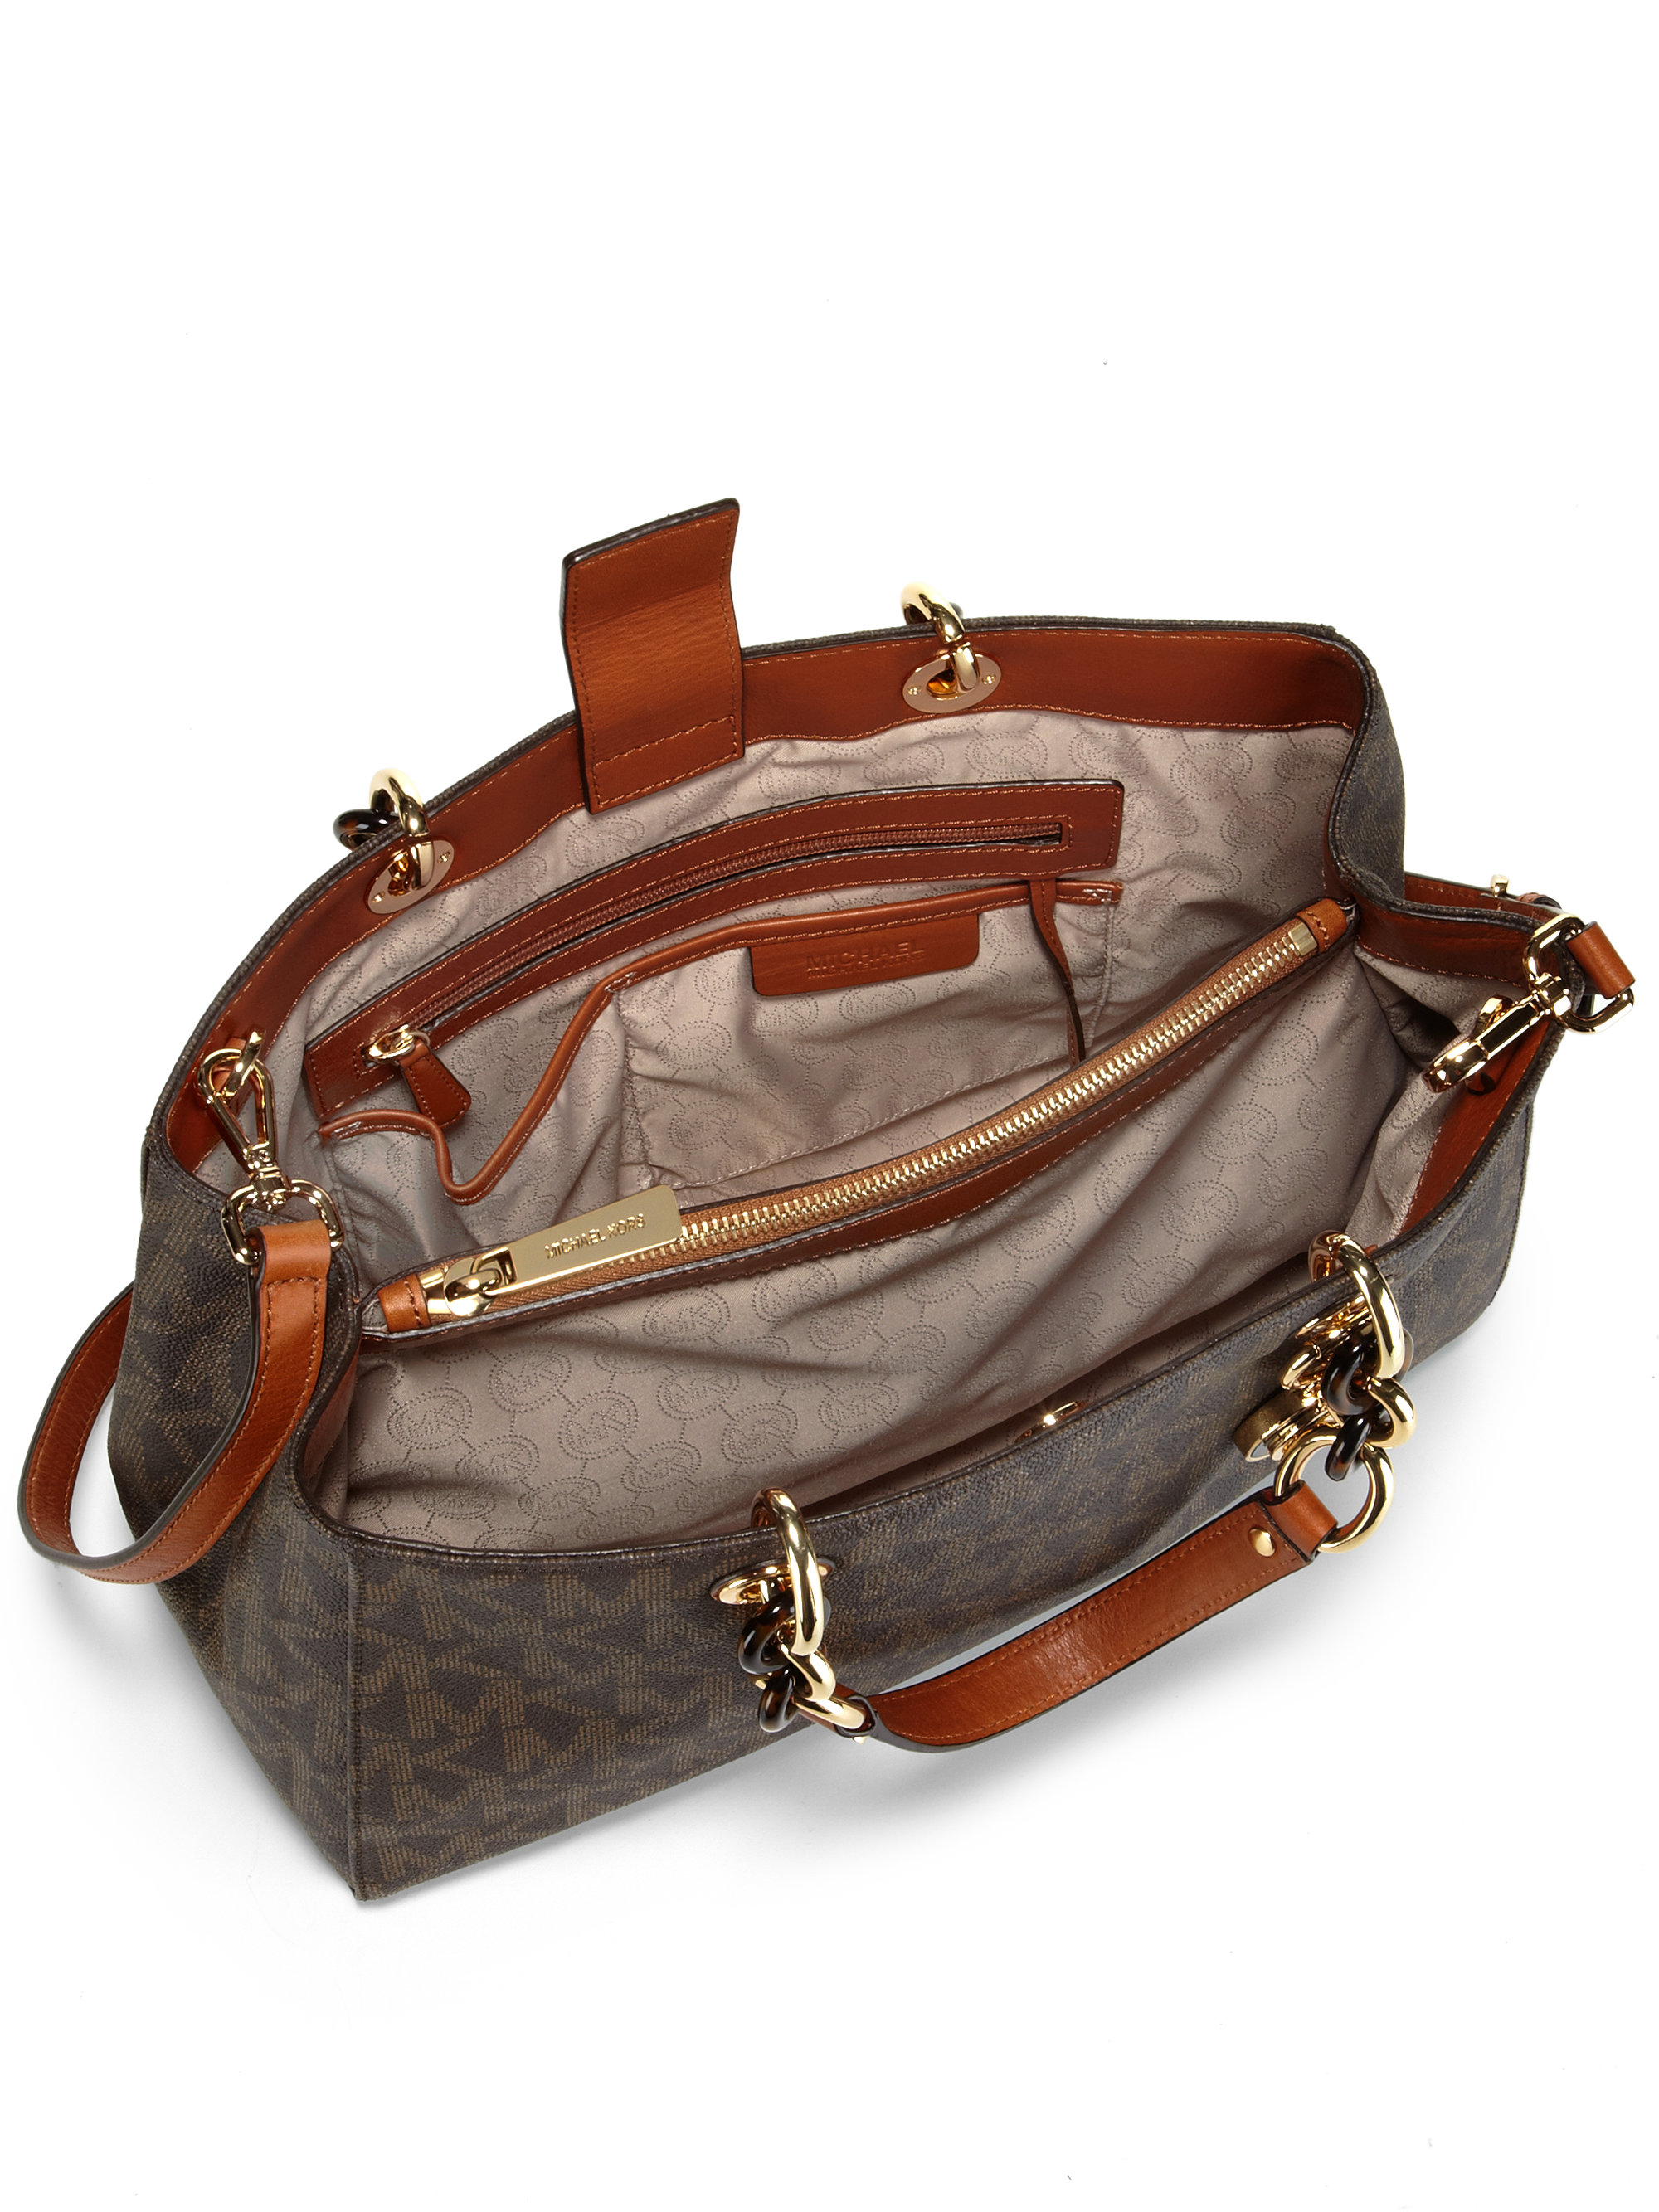 37bf6c408a83 ... greece lyst michael michael kors cynthia signature large satchel in  brown 1fa77 86887